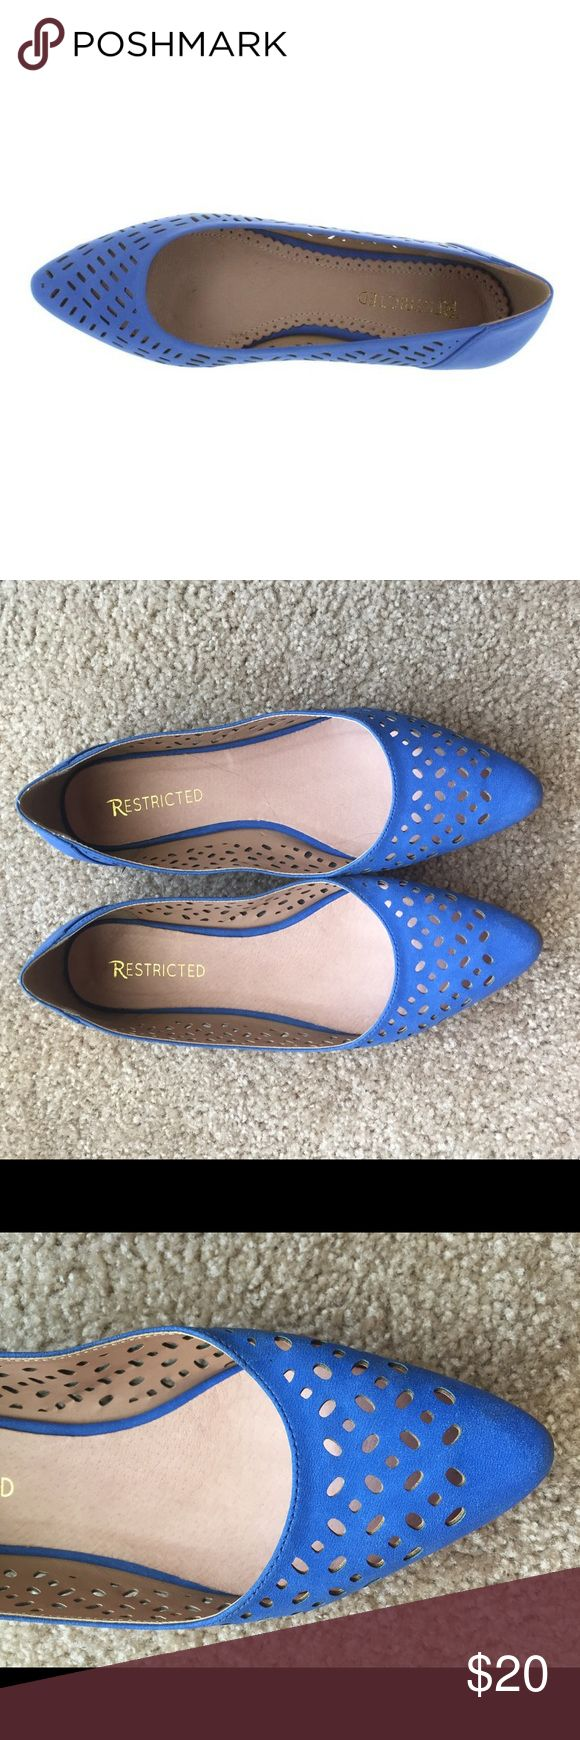 Blue flats Super cute blue flats with design cutouts. Lightly worn but in good condition. Restricted Shoes Flats & Loafers